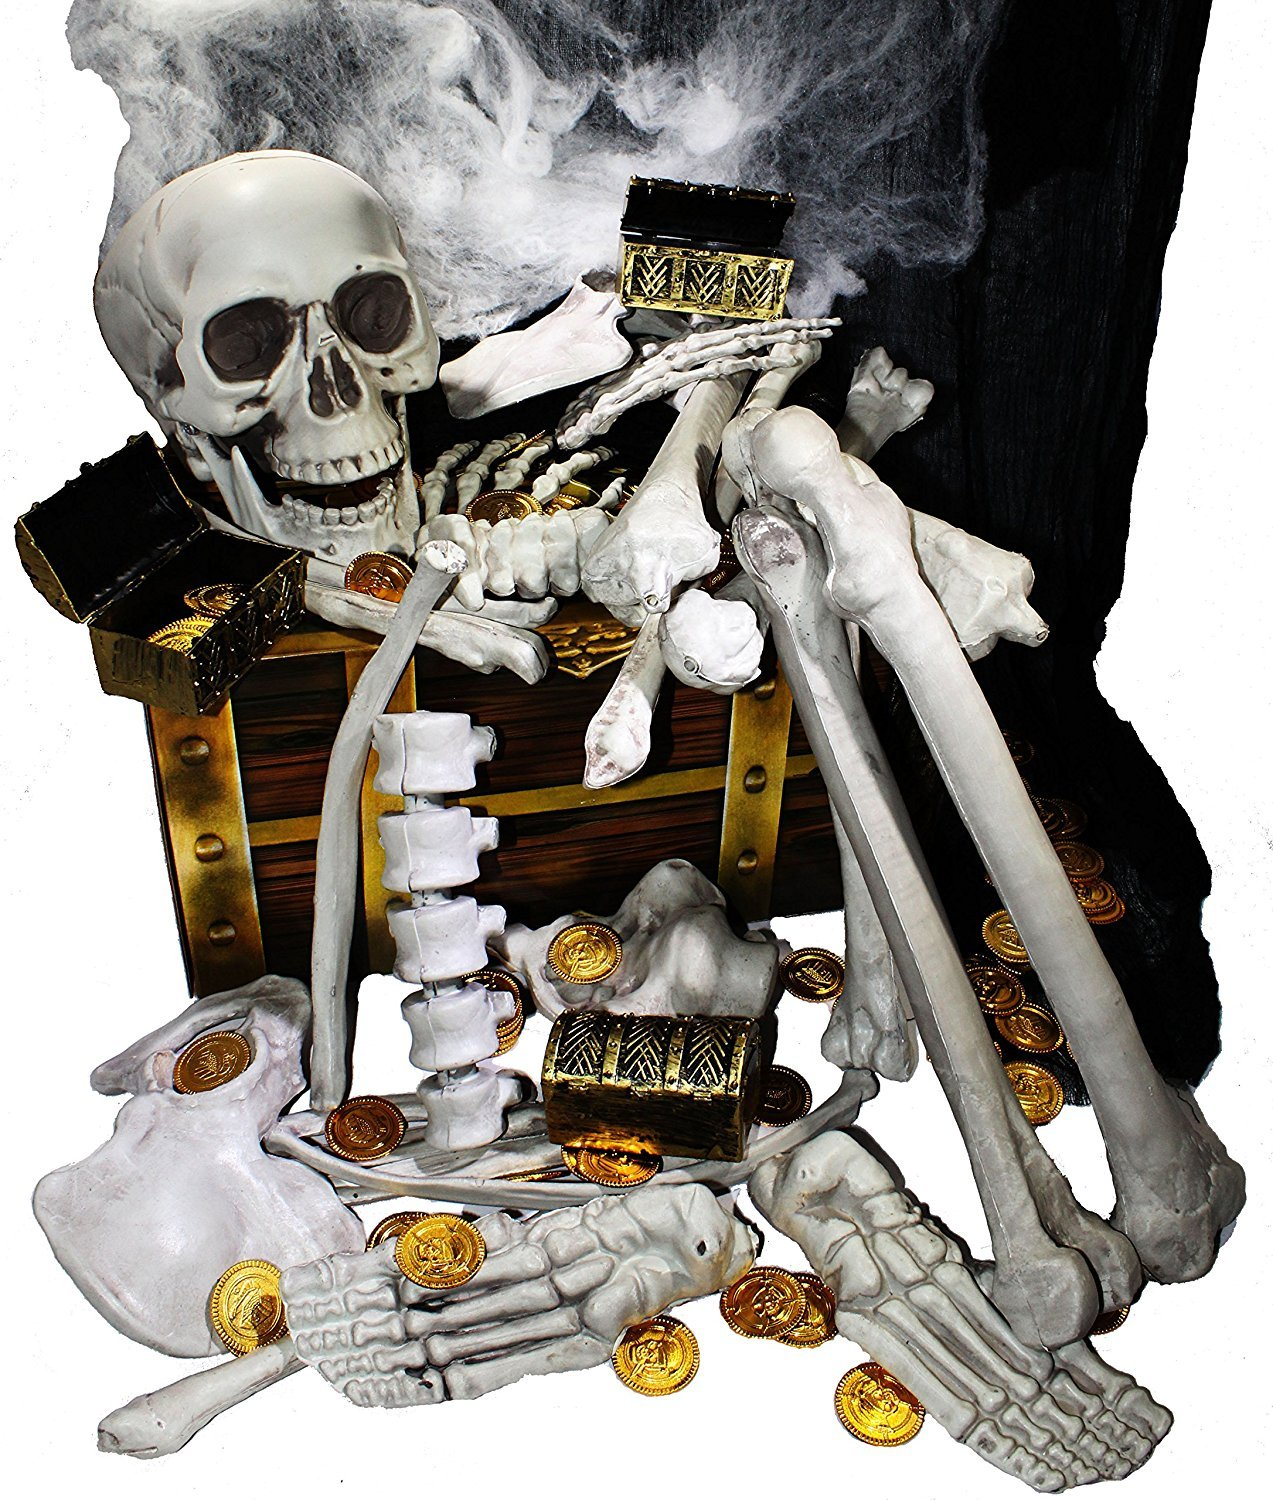 JOYIN Box of Skeleton Bones and Skull for Halloween Decorations Including 28 PCs Halloween Bones 100 Pirate Coins and Spider Webs by JOYIN